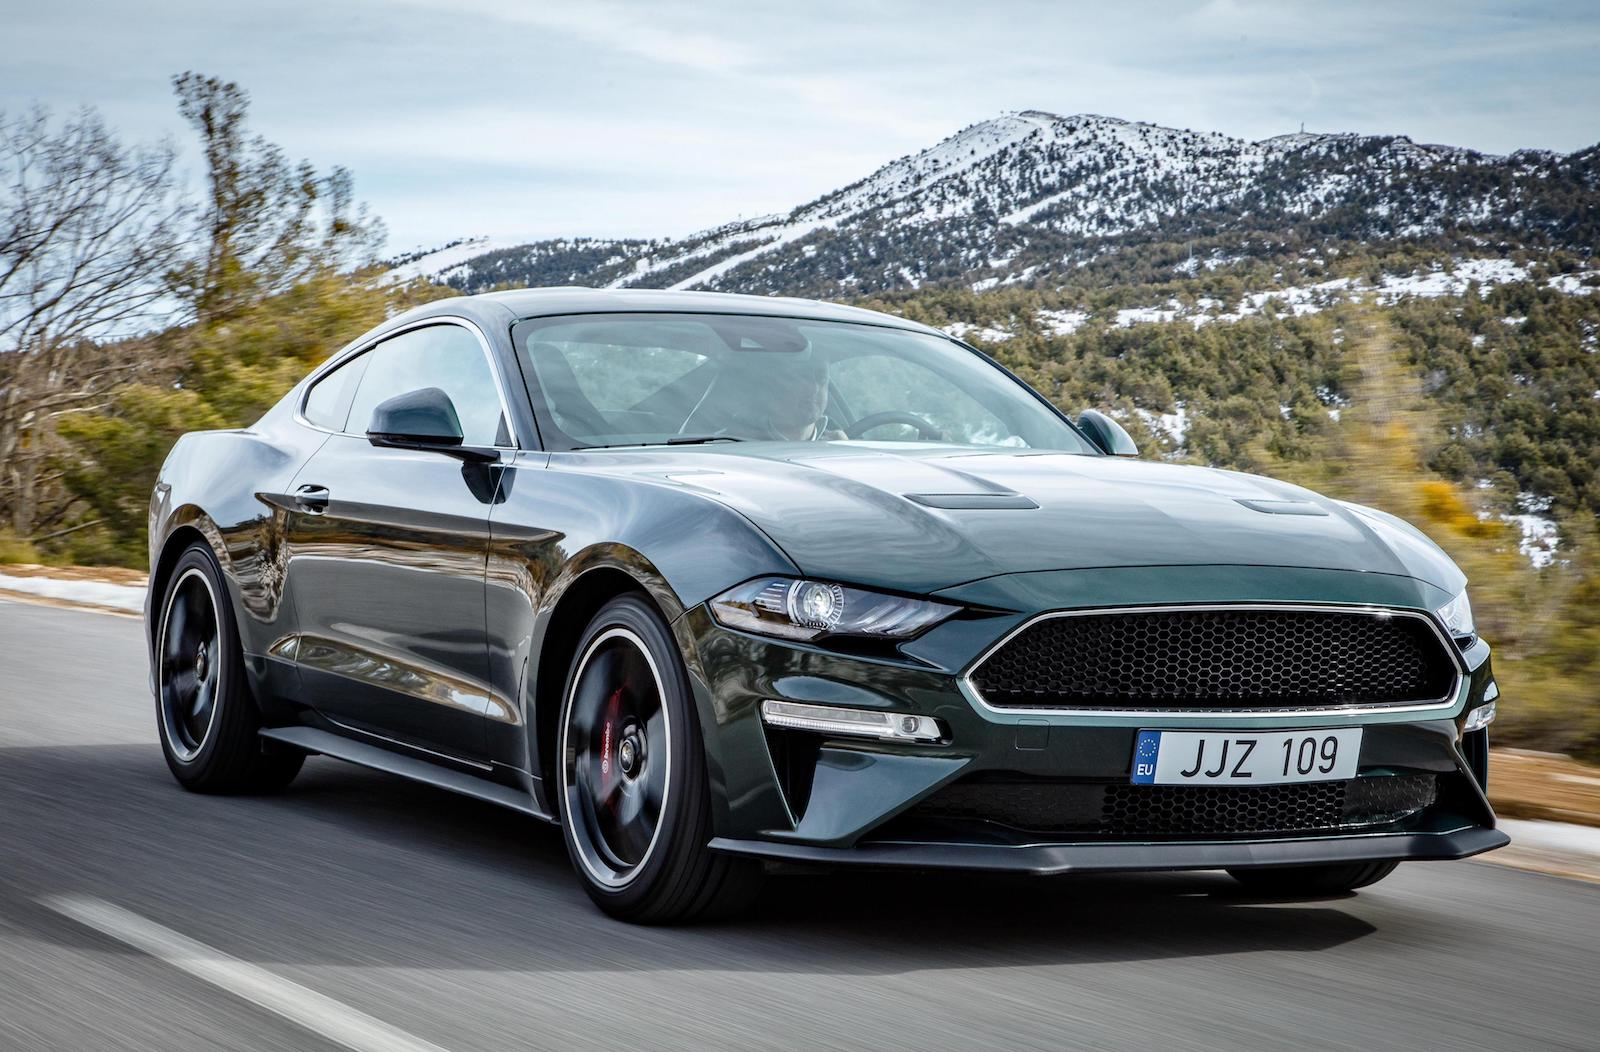 Mustang Rocket Price >> 2018 Ford Mustang Bullitt special edition confirmed for Australia | PerformanceDrive